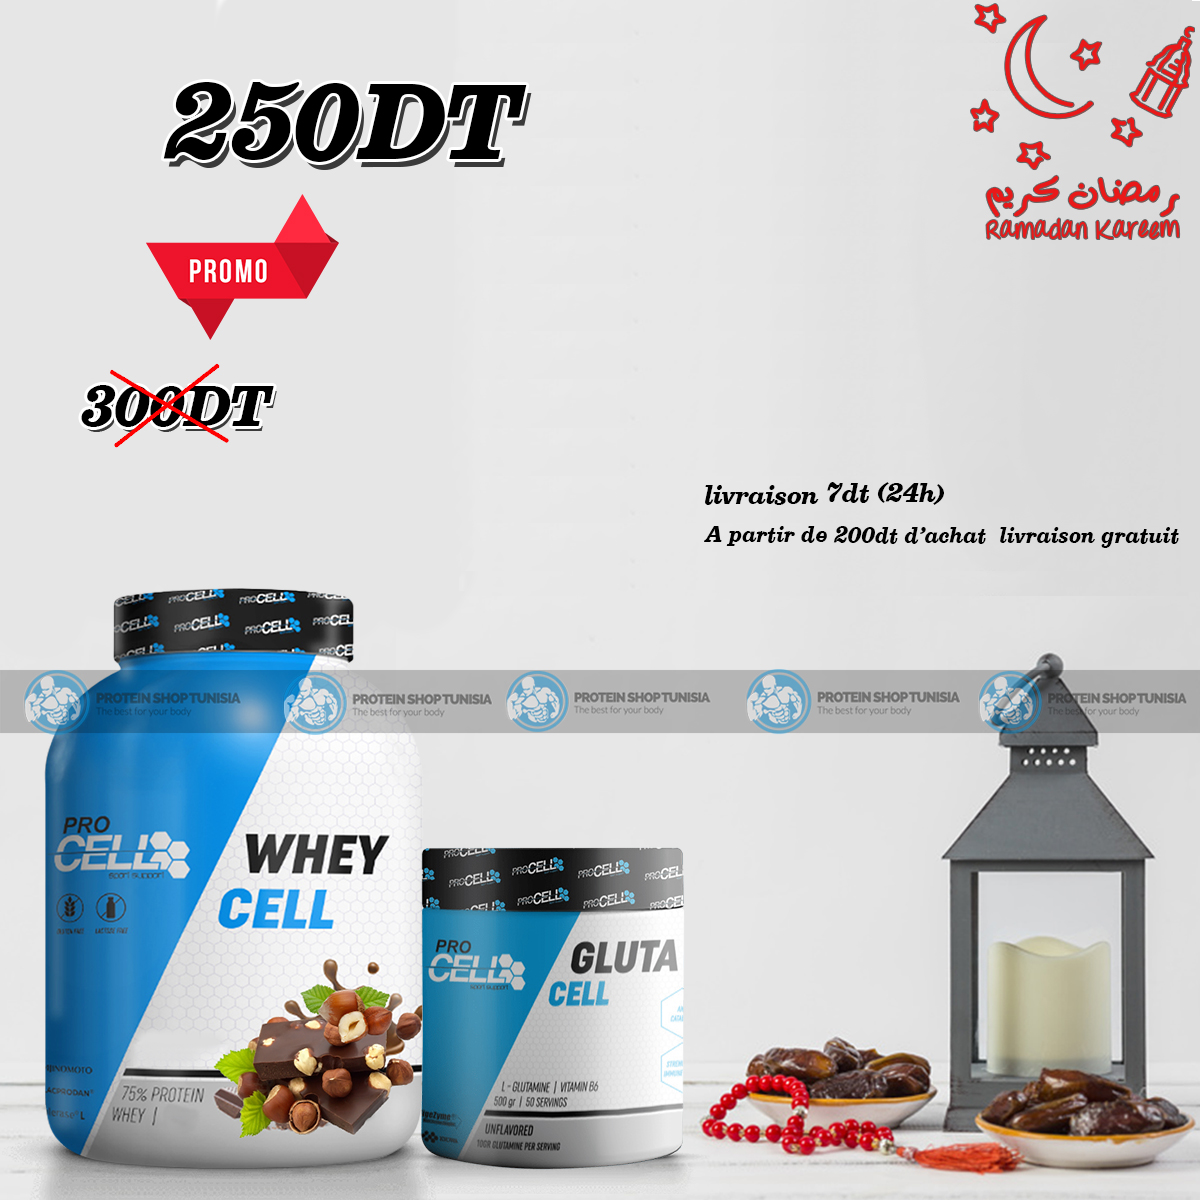 whey cell gluta cell